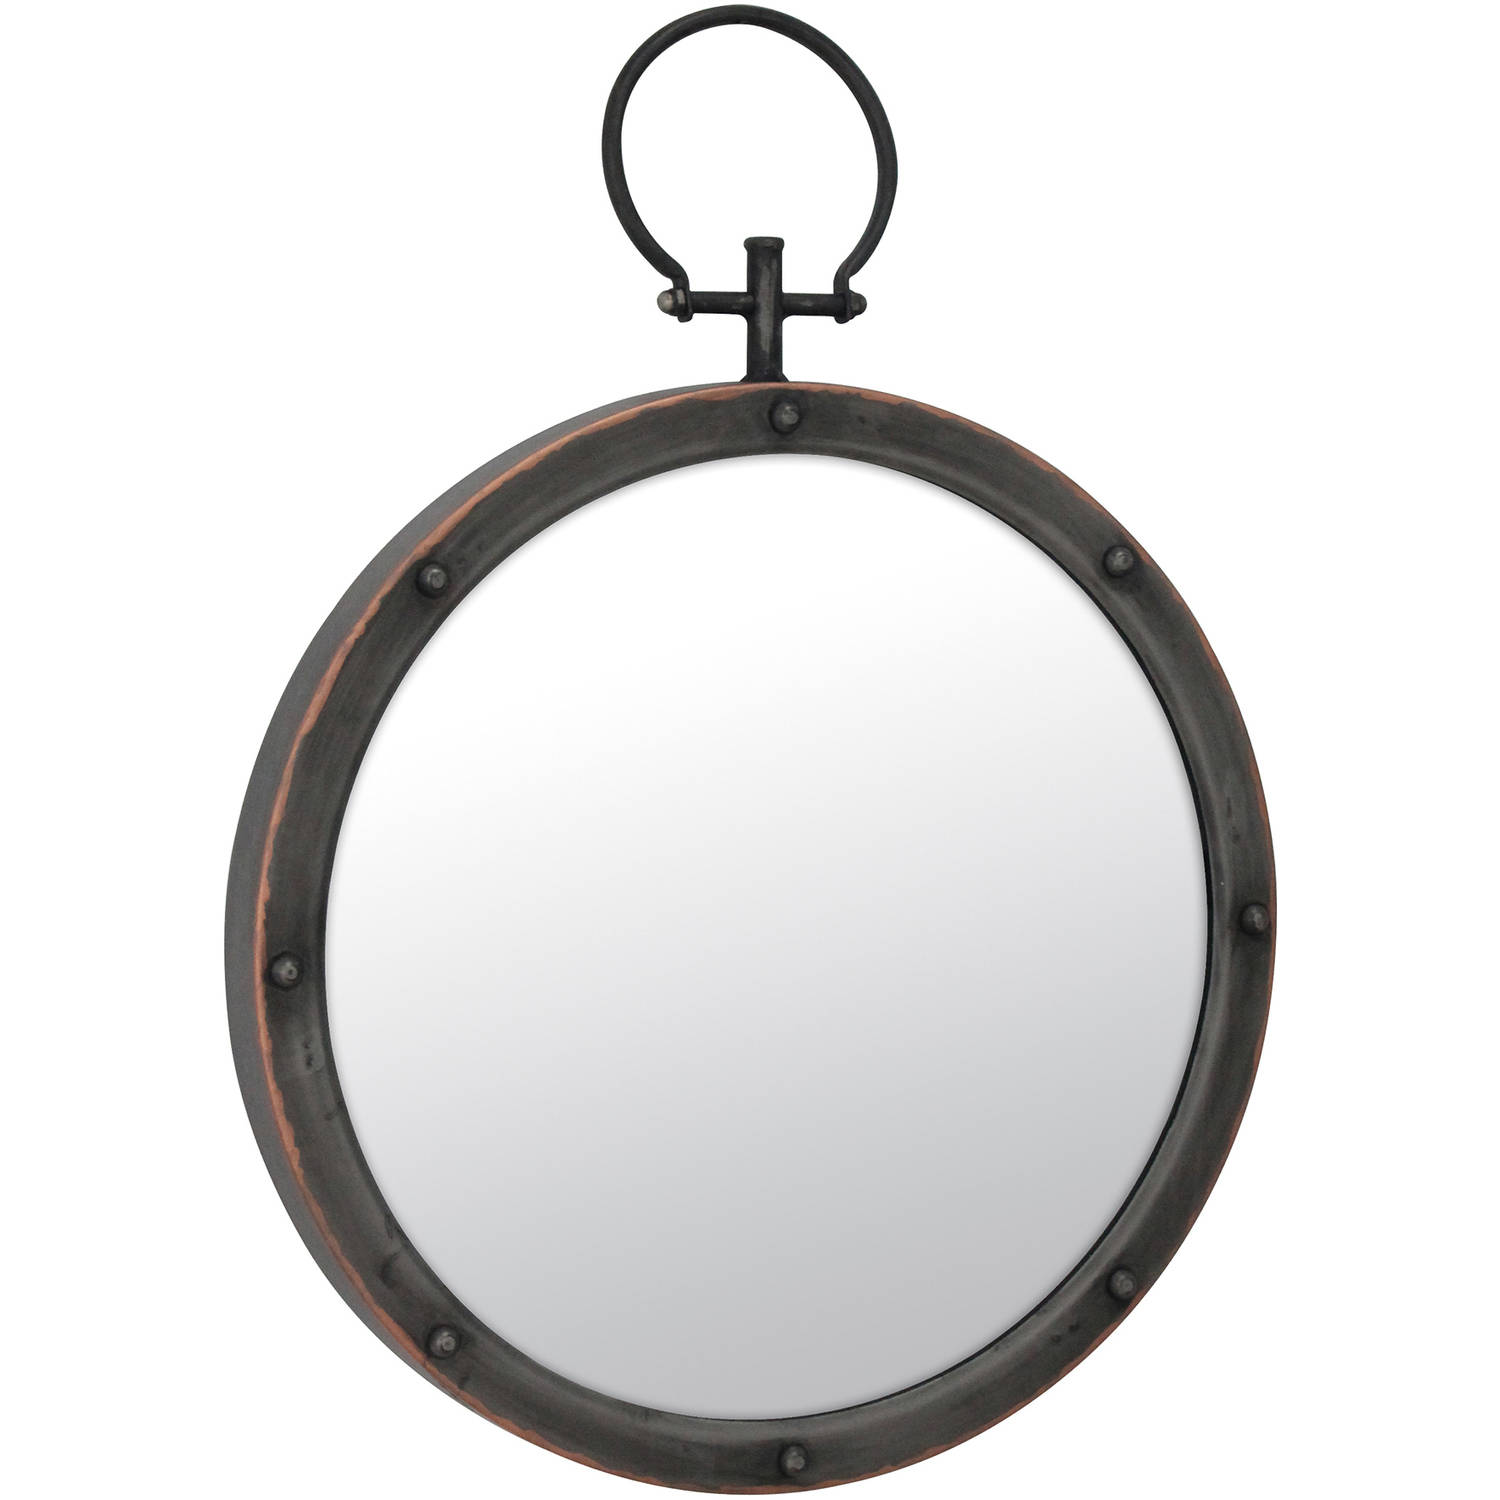 Metal Round Mirror with Ring and Rivet Trim by CKK HOME DECOR